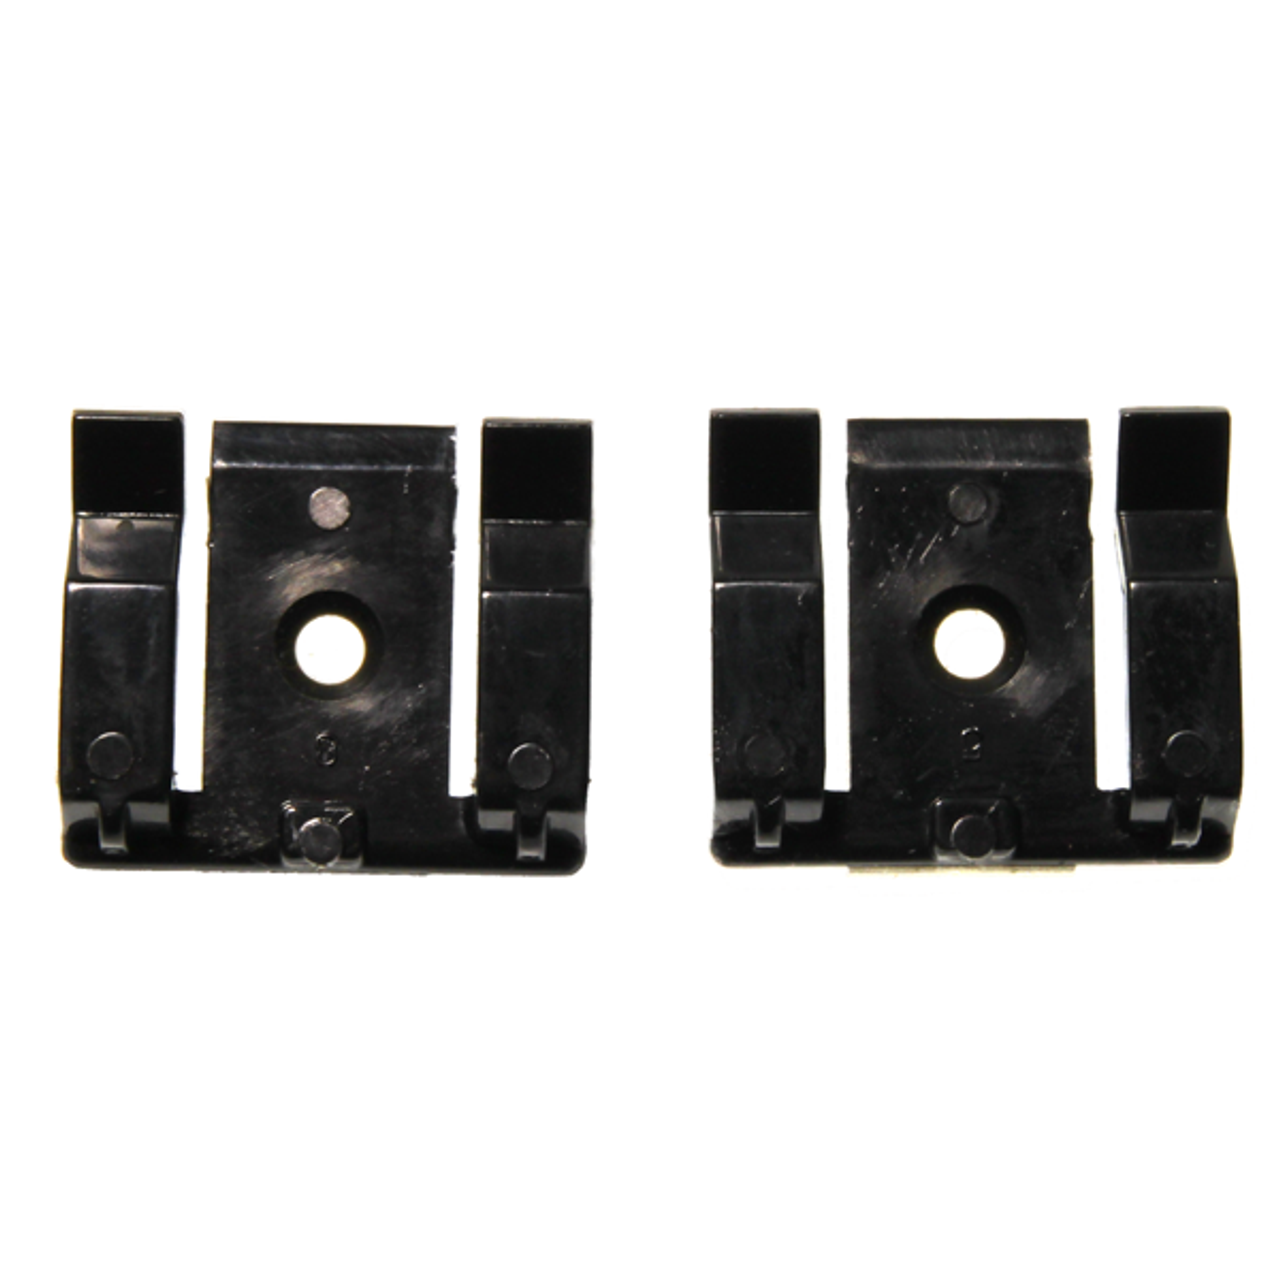 Product image for Mounting Clips for SmartNAV   CX Computer Superstore